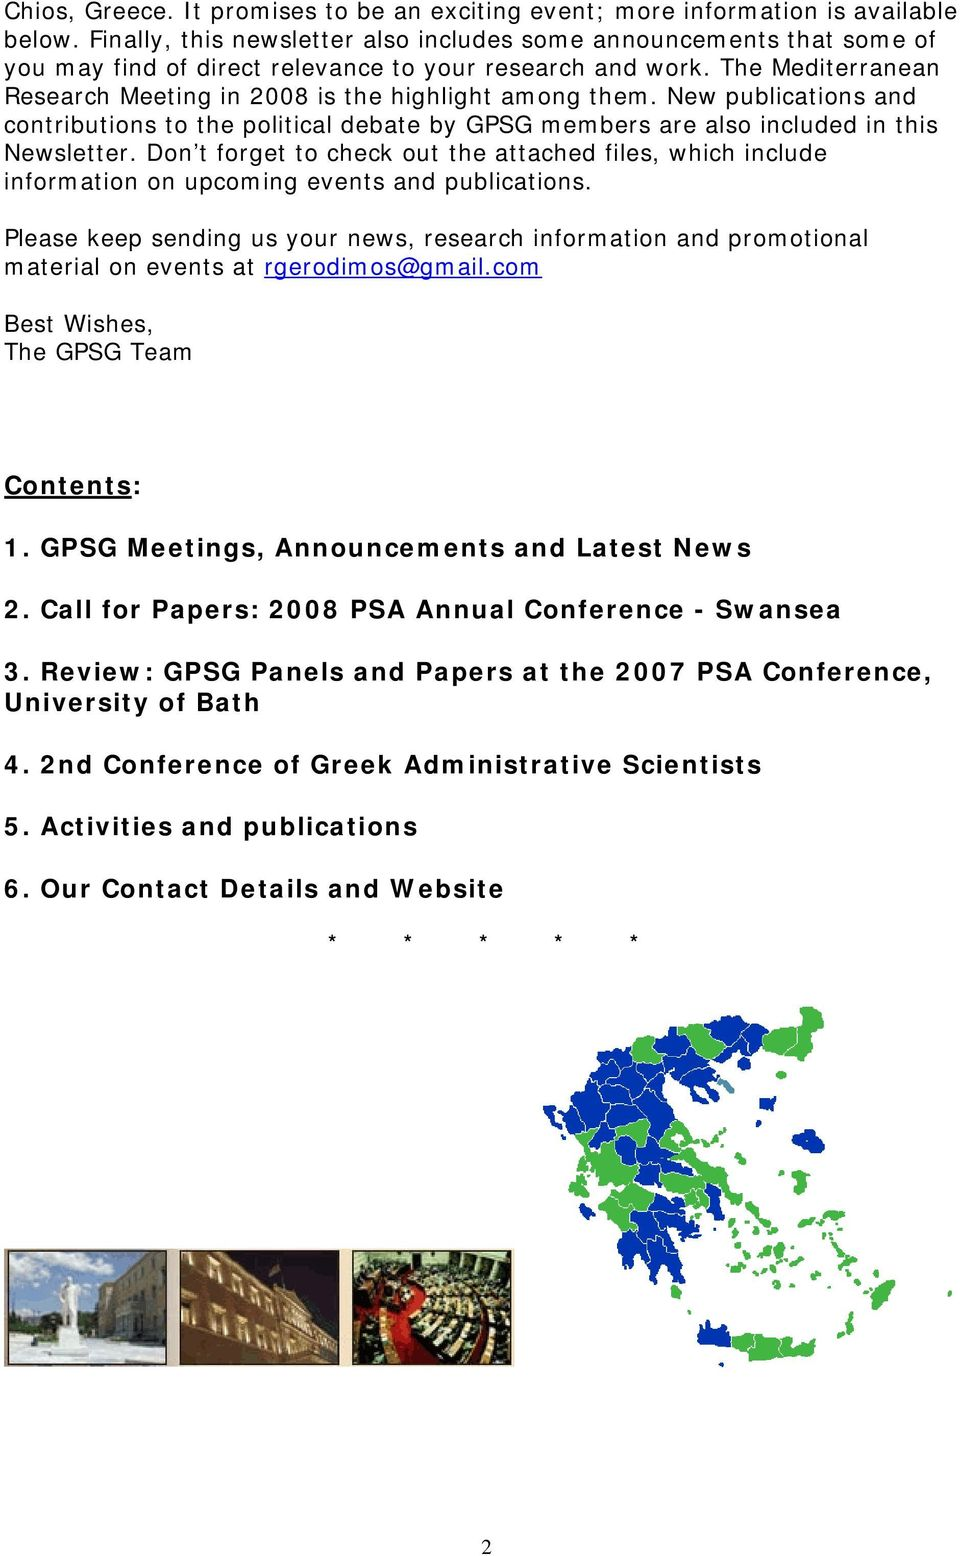 The Mediterranean Research Meeting in 2008 is the highlight among them. New publications and contributions to the political debate by GPSG members are also included in this Newsletter.